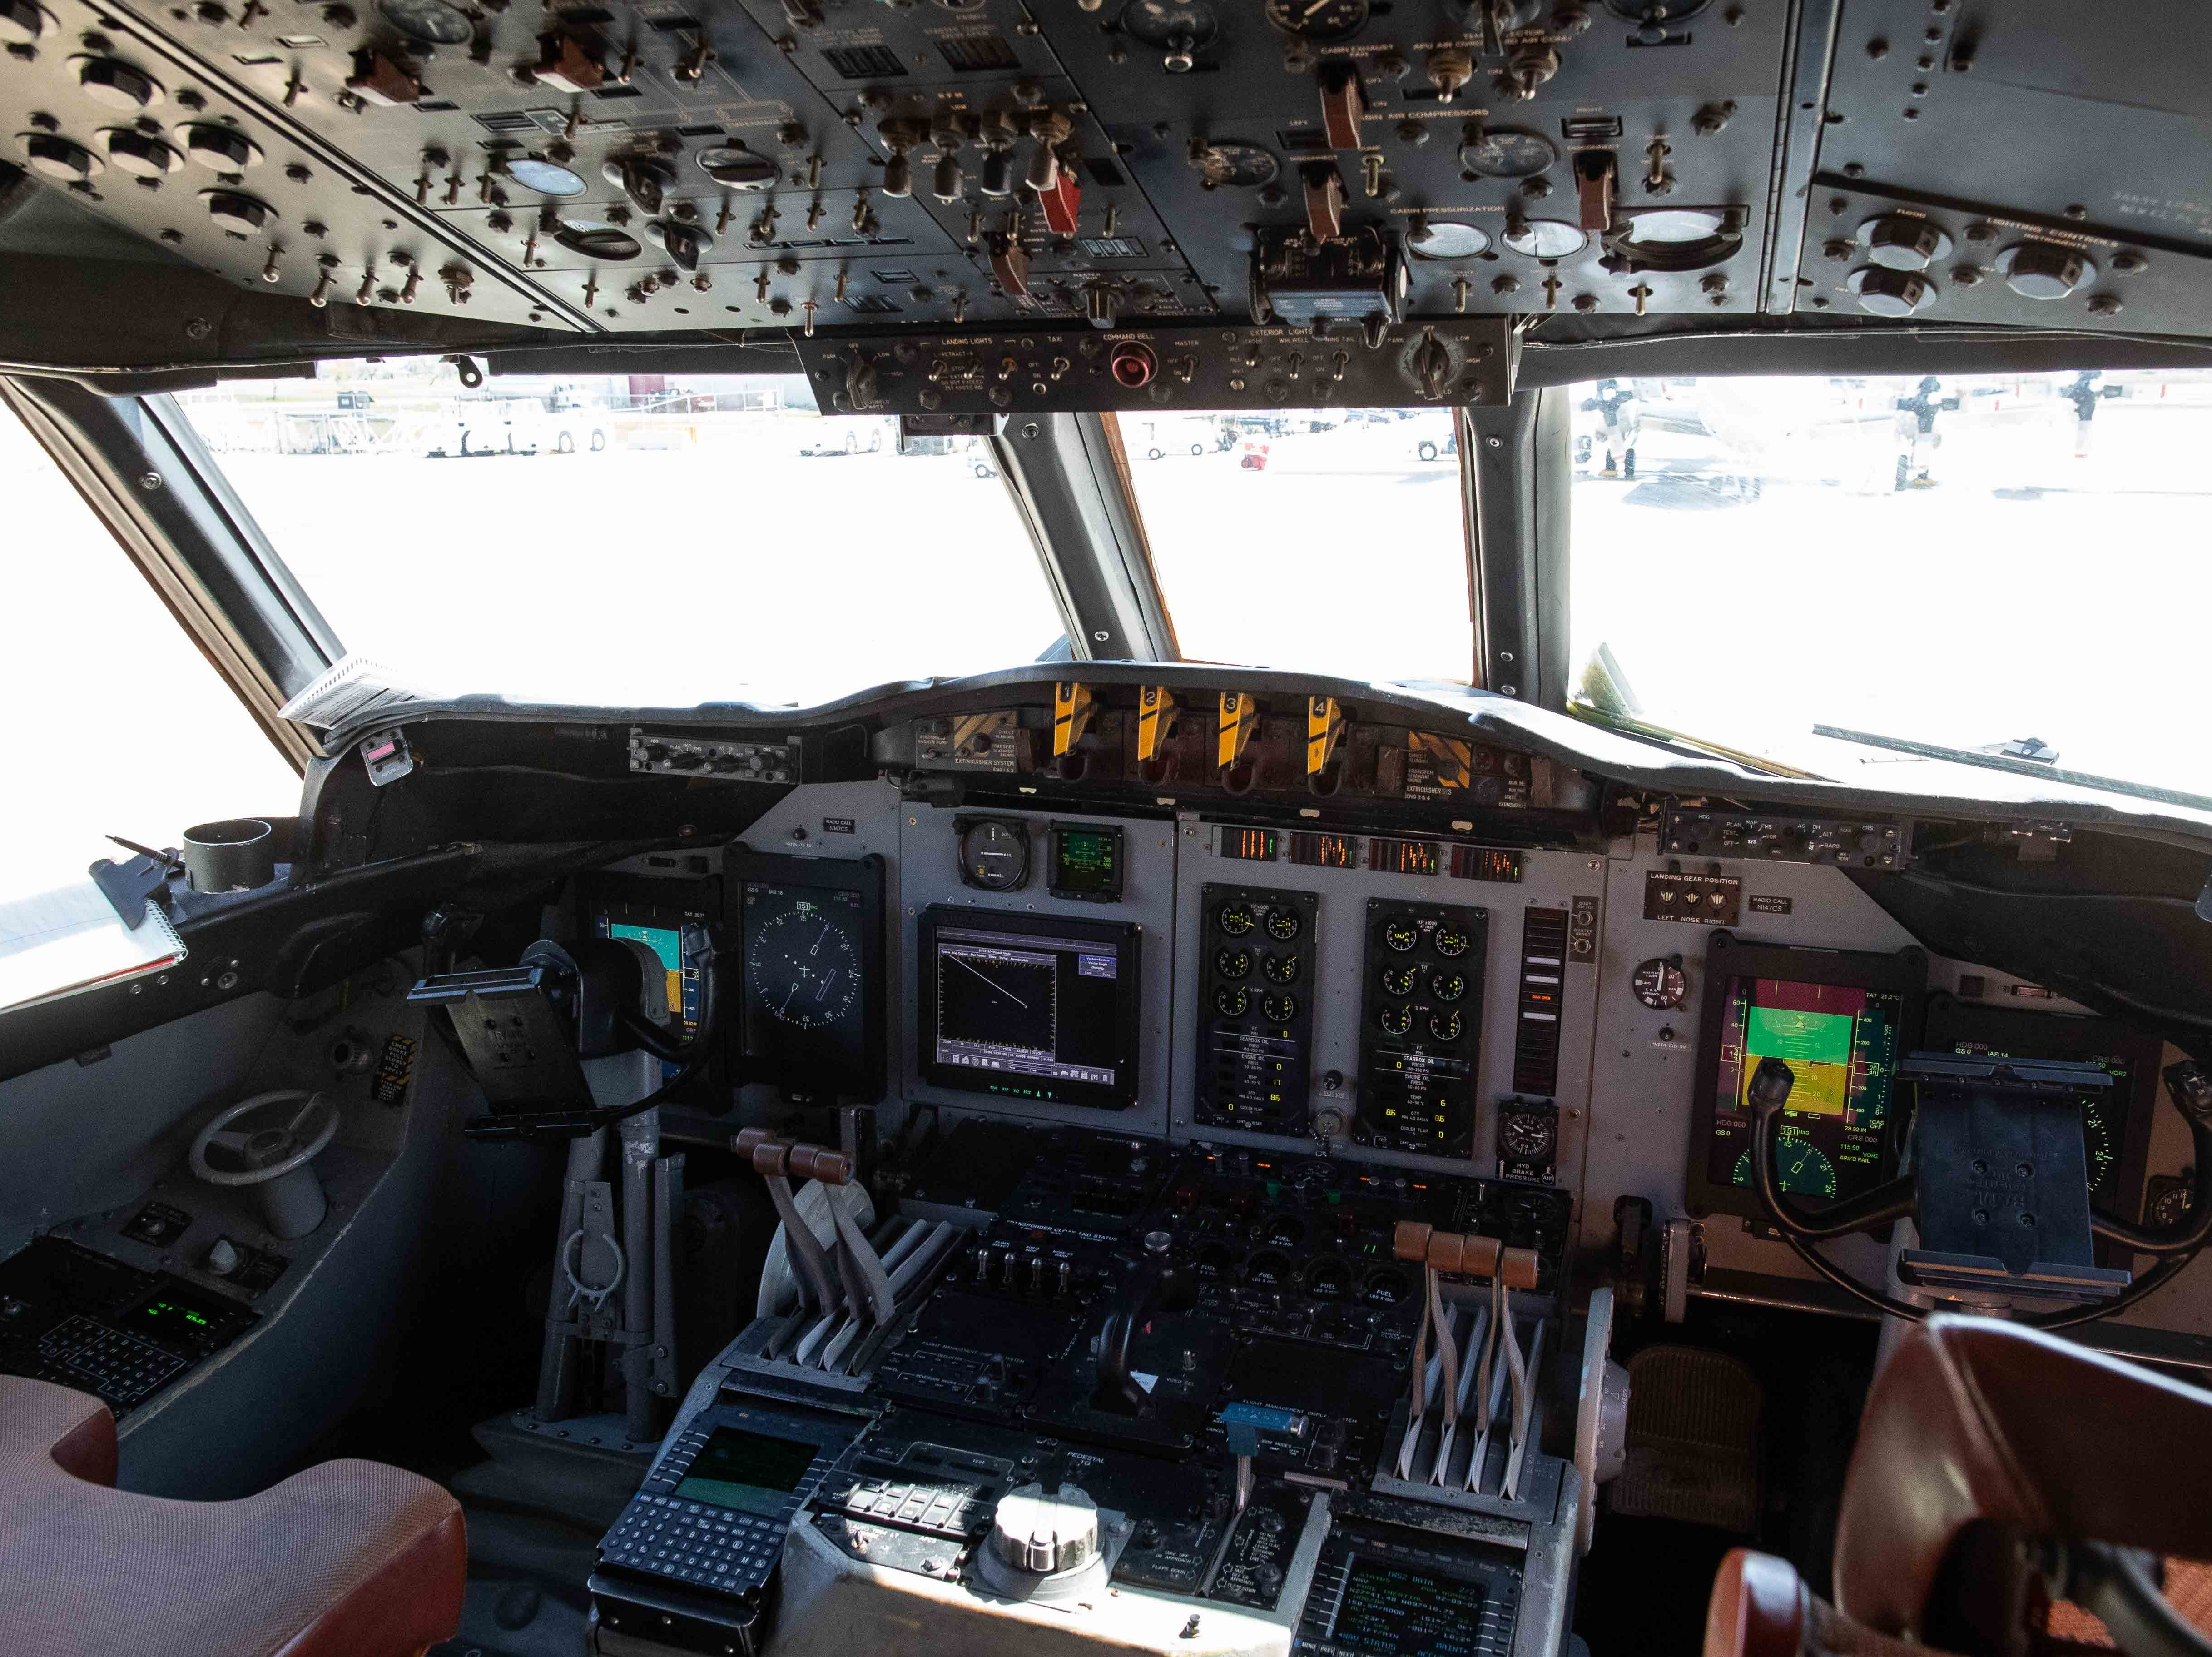 The cockpit of a Customs and Border Protection P-3 Orion aircrafts at their National Air Security Operations Center on Navy Air Station Corpus Christi on Wednesday, Feb. 20, 2019.